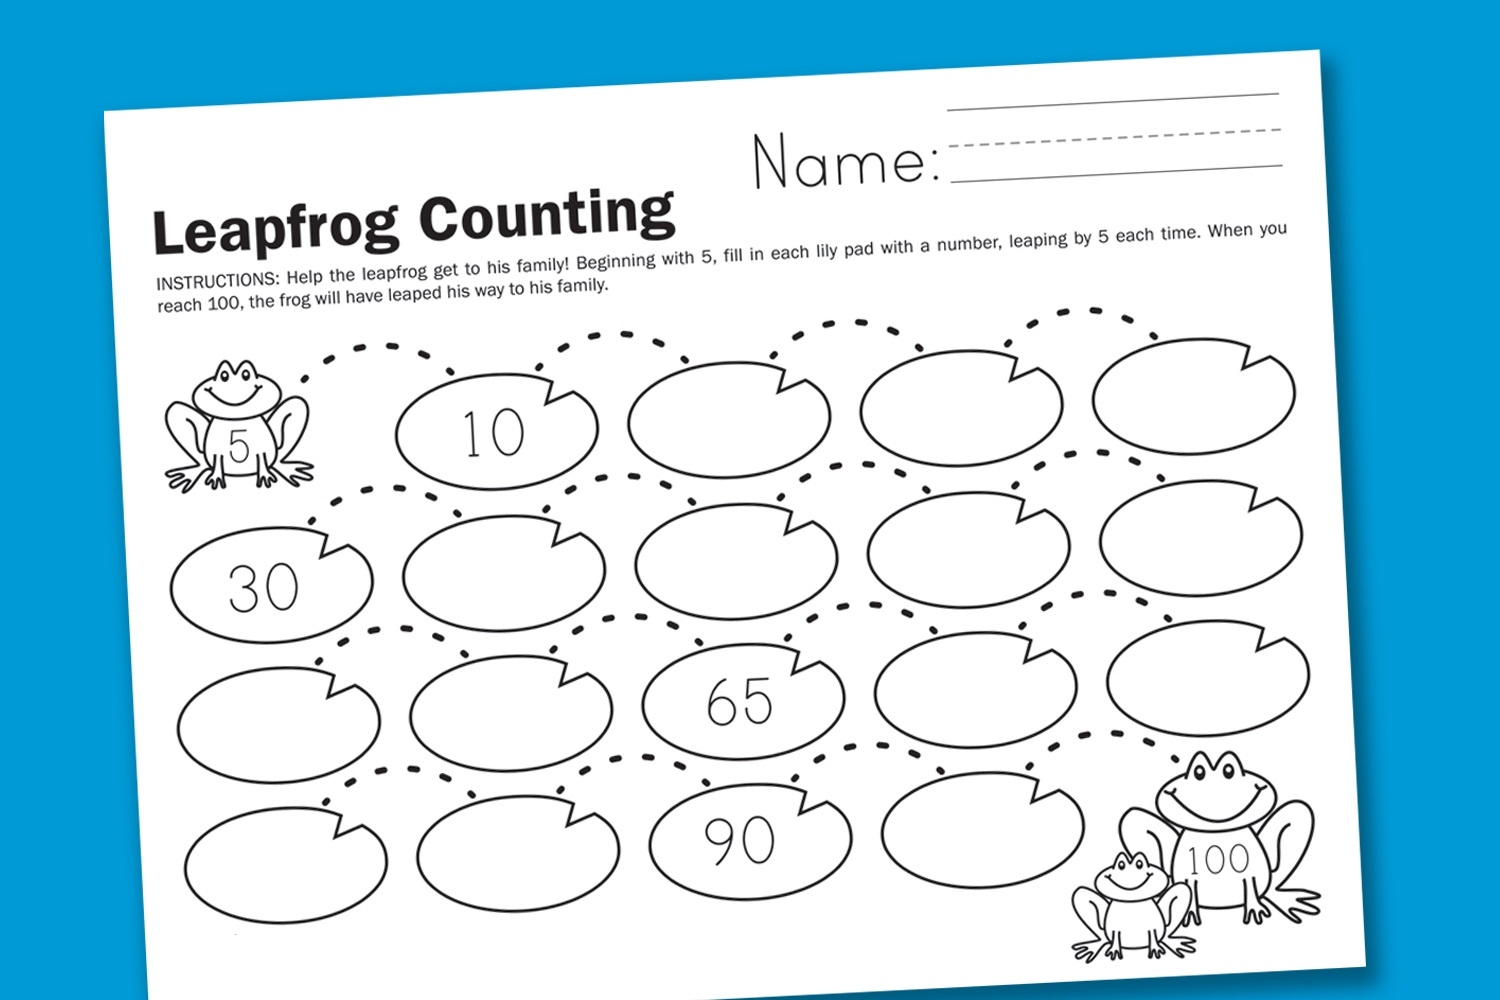 count-by-5s-worksheet-blue